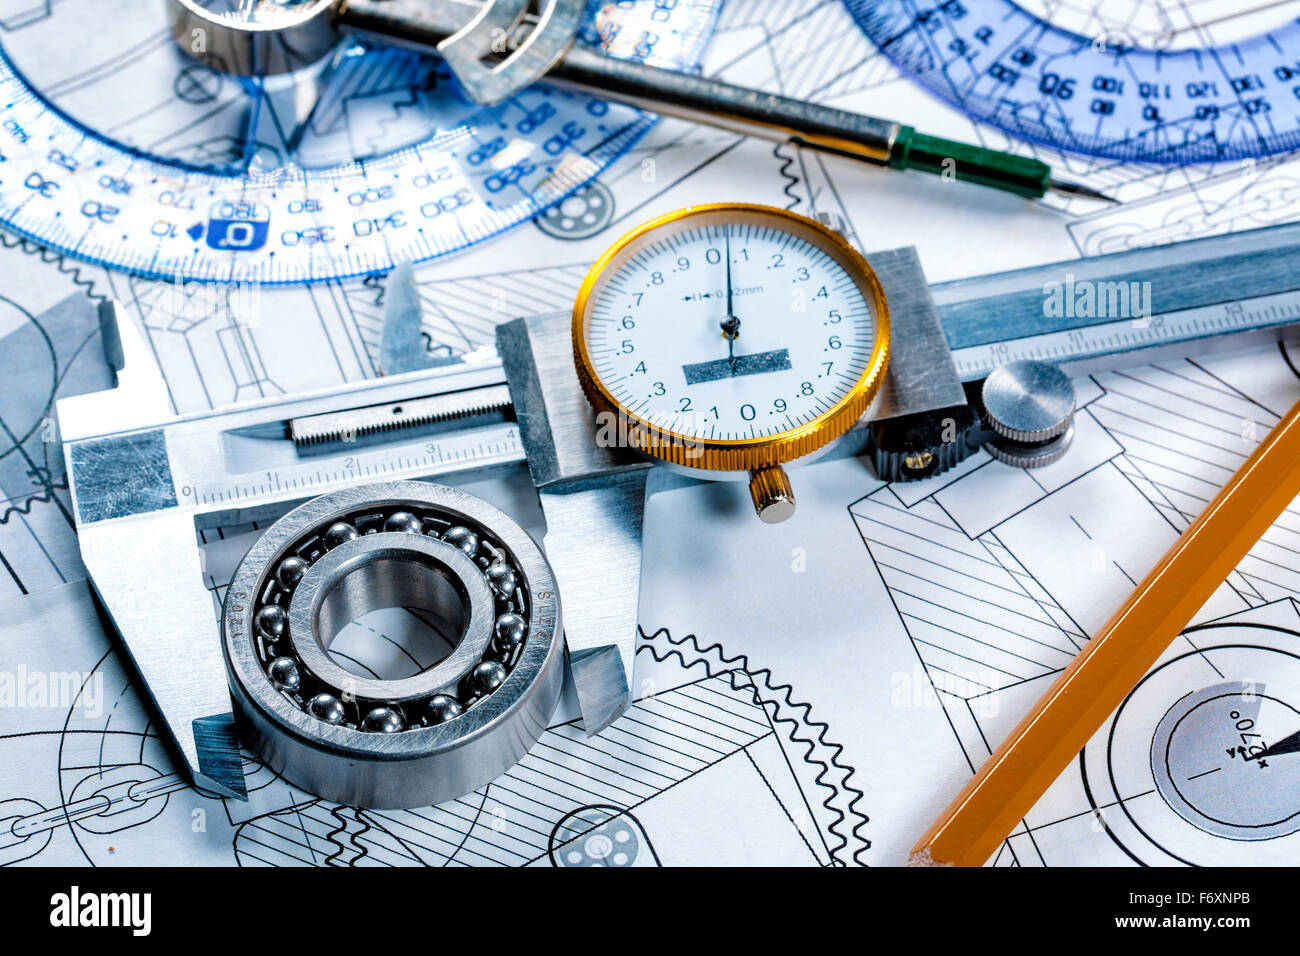 Technical drawing and tools Stock Photo: 90327619 - Alamy